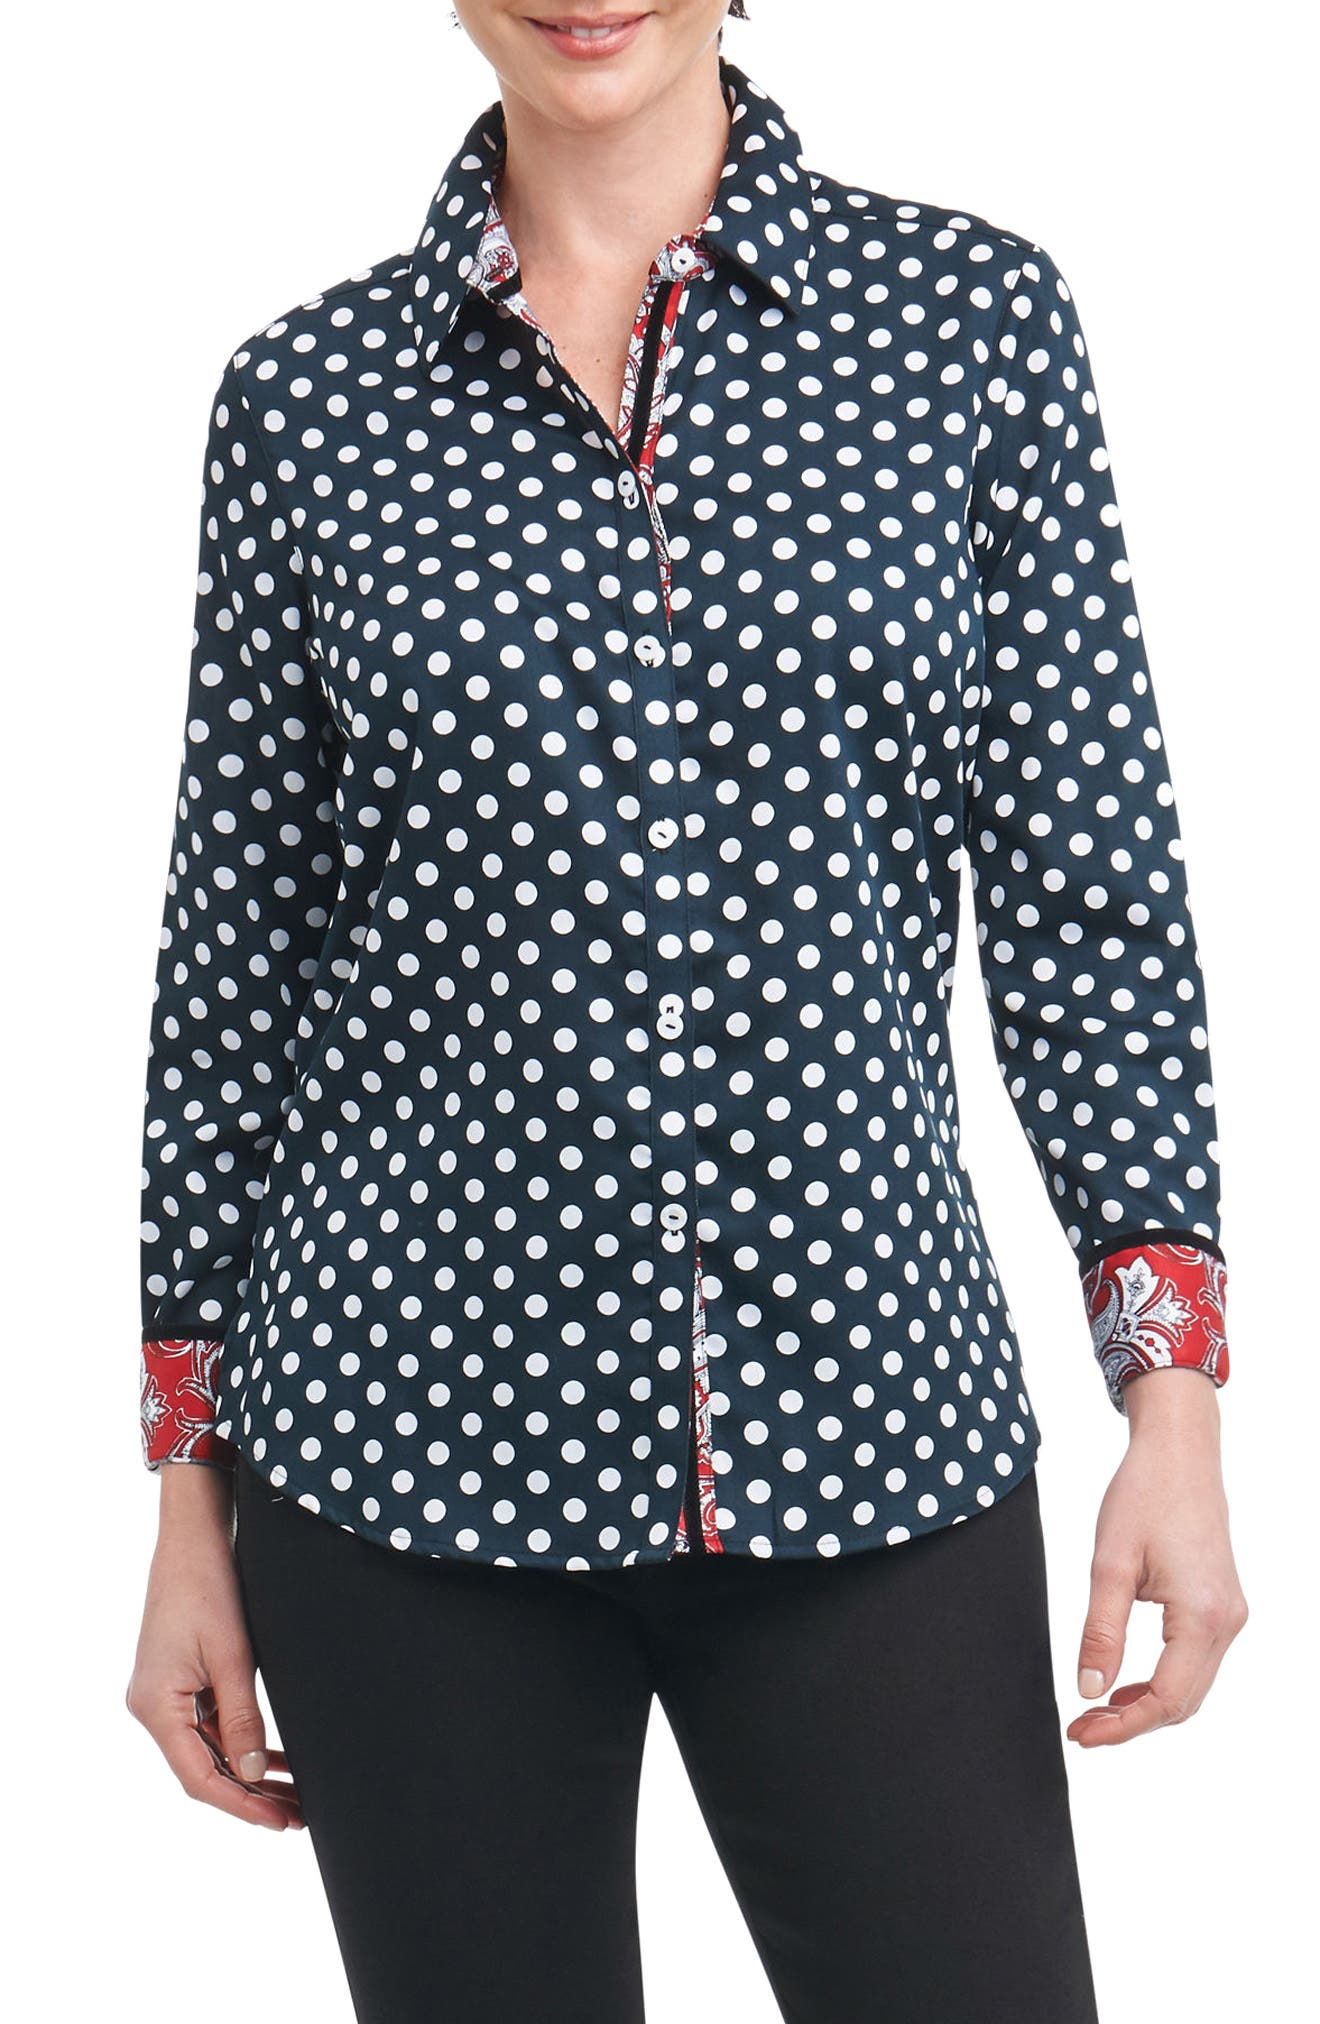 Main Image - Foxcroft Ava Dot Paisley Trim Shirt (Regular & Petite)